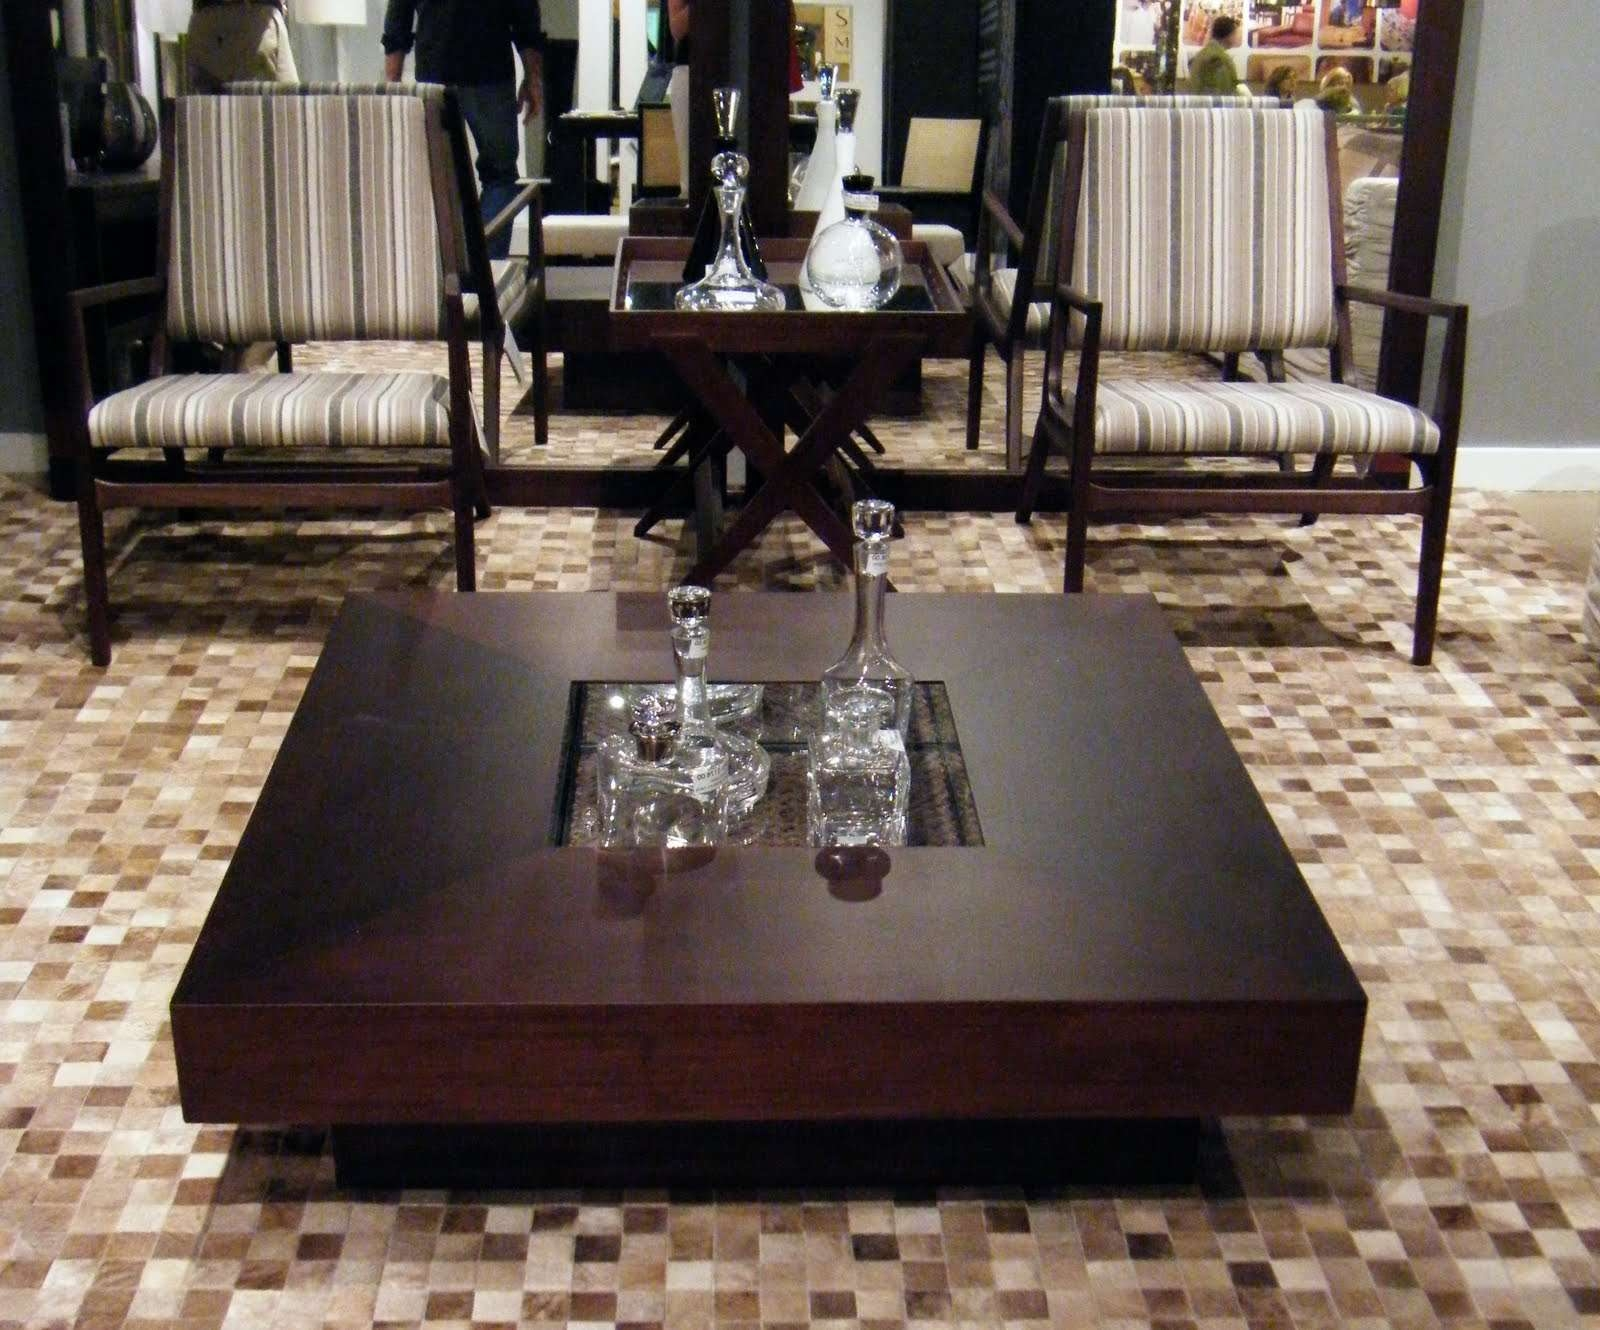 2017 Low Square Wooden Coffee Tables Regarding Coffee Table : Fabulous Round Glass Top Coffee Table Gray Wood (View 19 of 20)